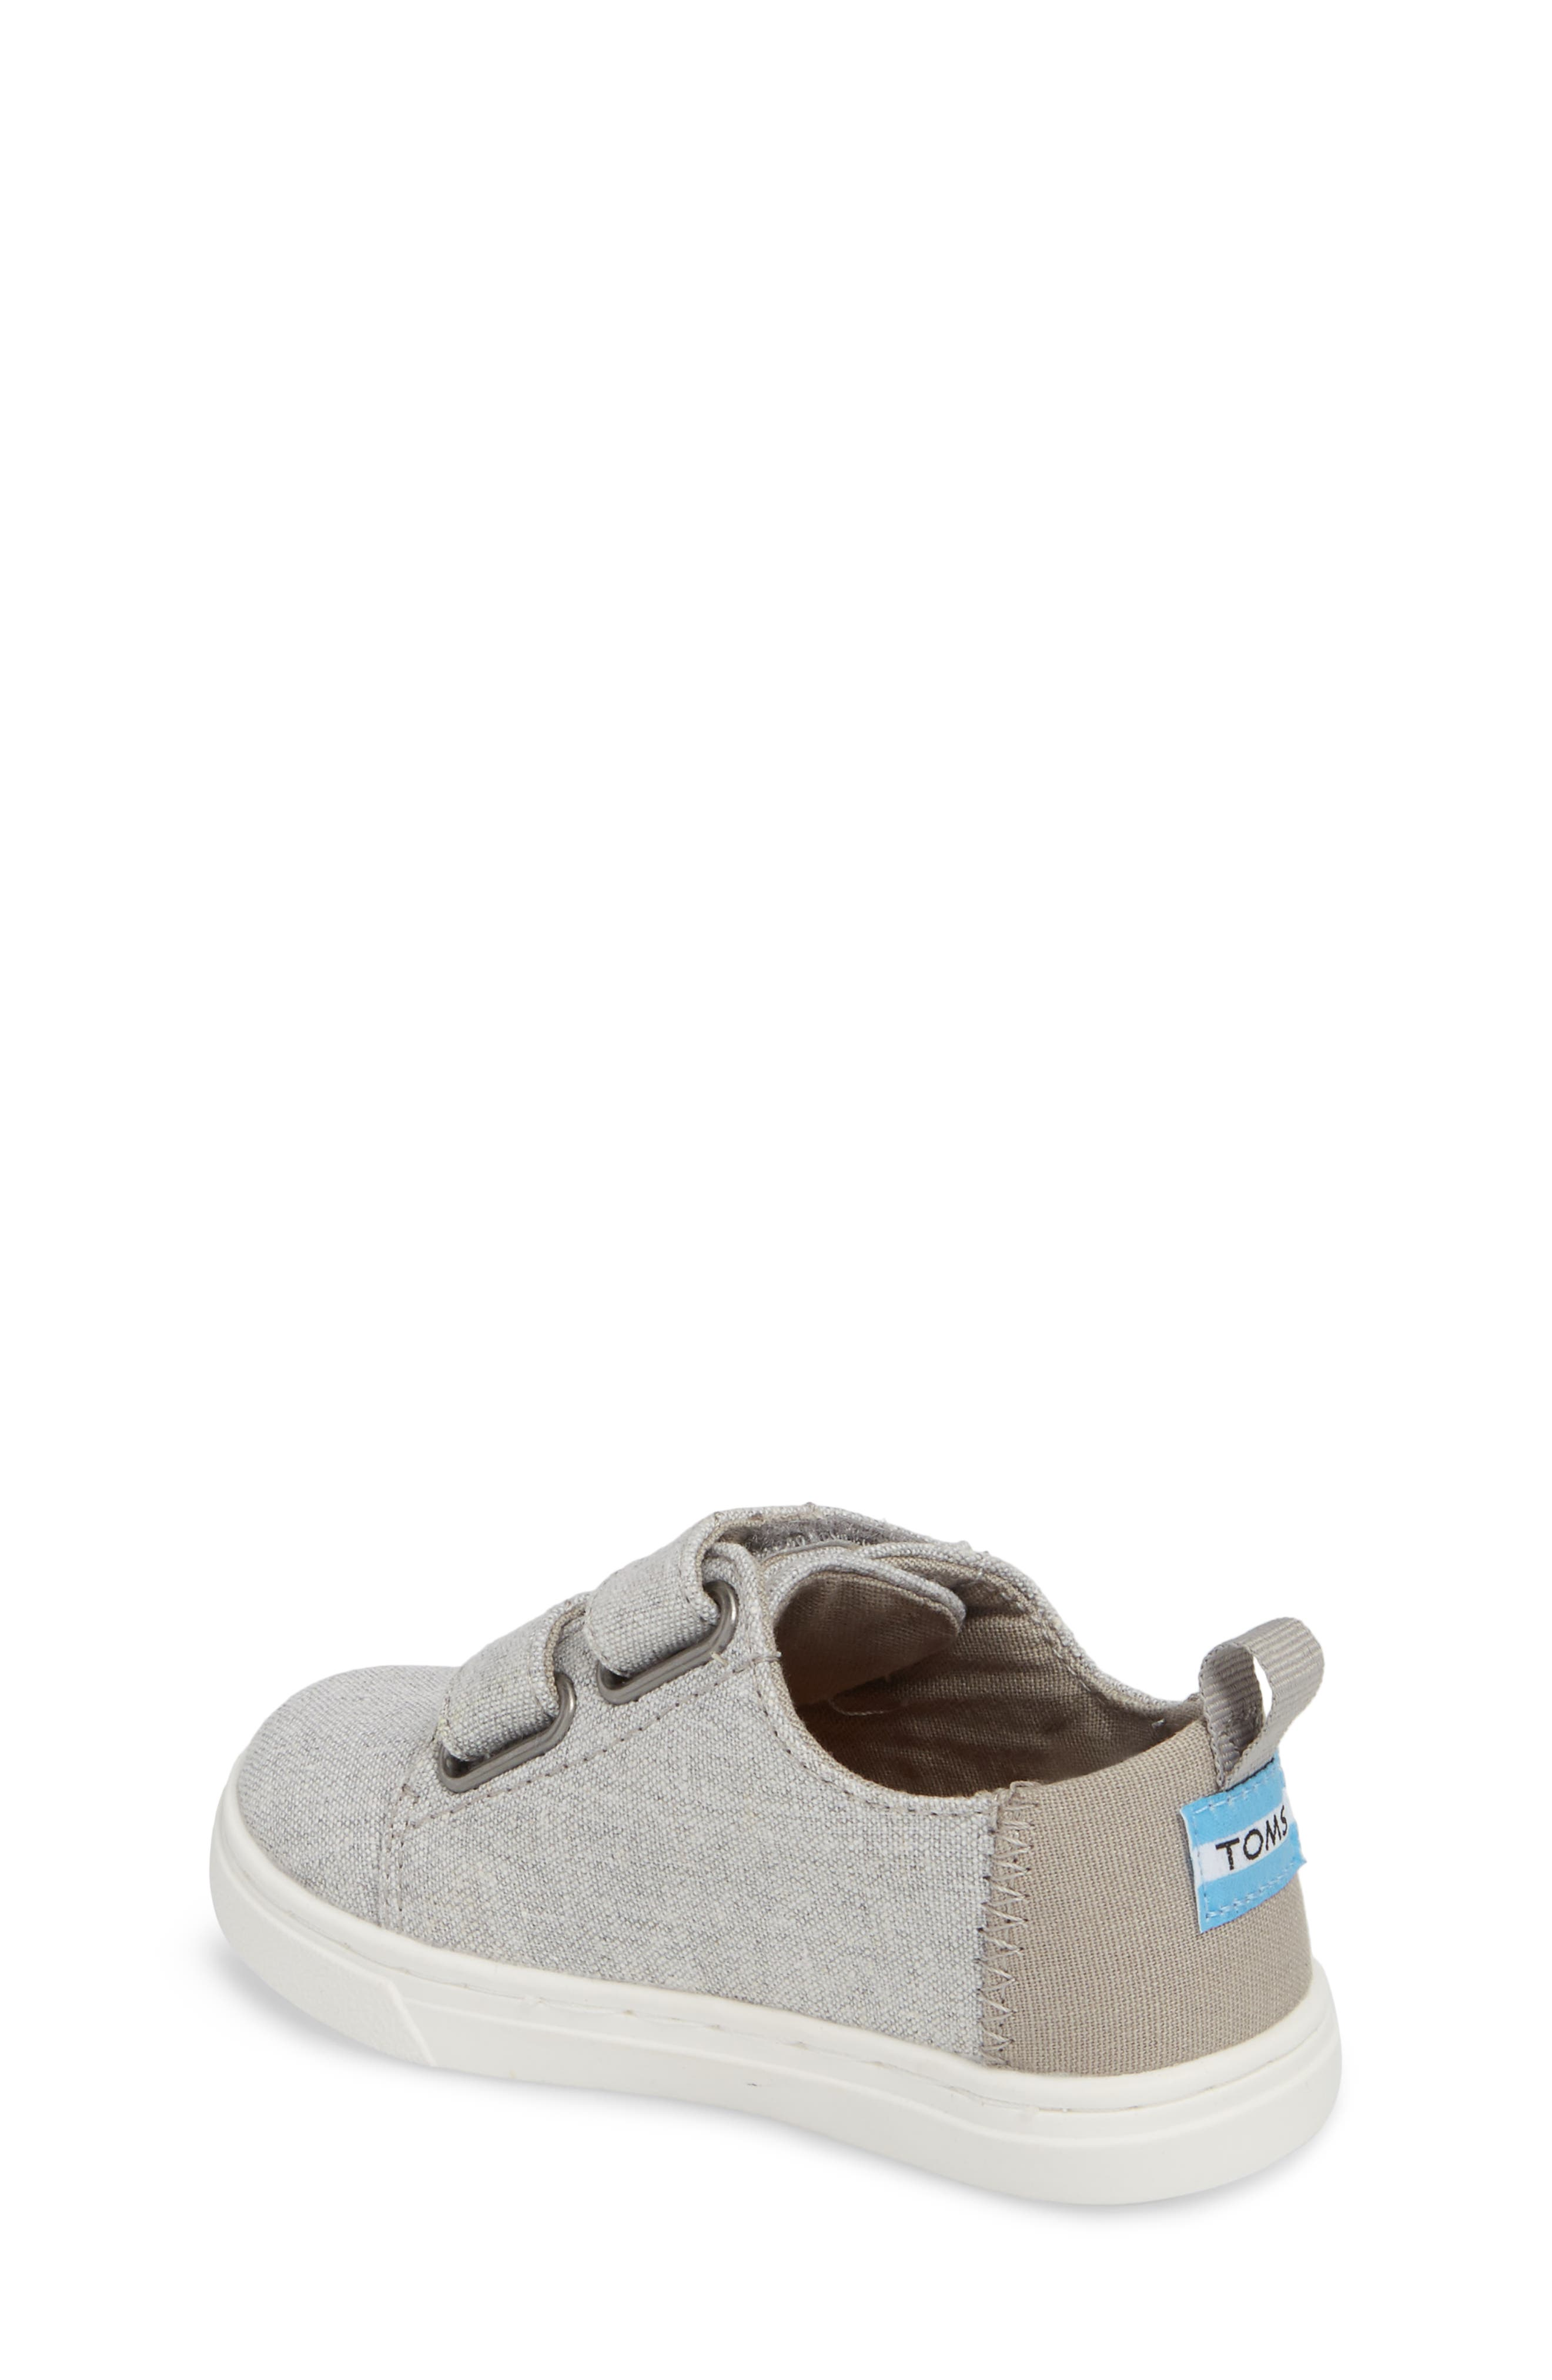 sherpa com babies pin boy crib baby toms boot carters shoes cribs carter and s